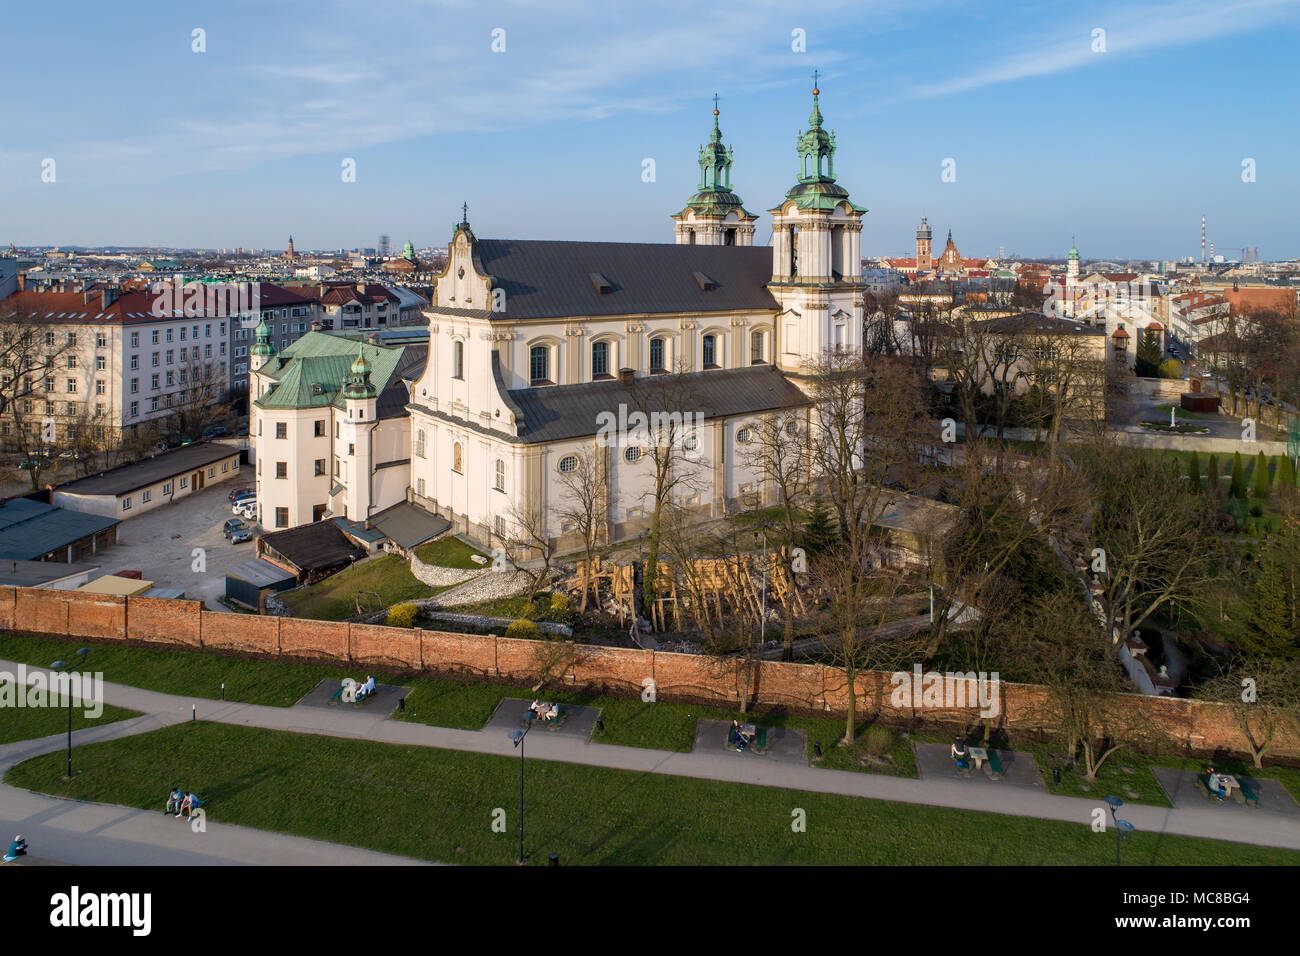 Krakow, Poland. Old city with Paulinite monastery, St Stanislaus church, a.k.a. Skalka, far view of Kazimierz, old Jewish district, and other churches - Stock Image